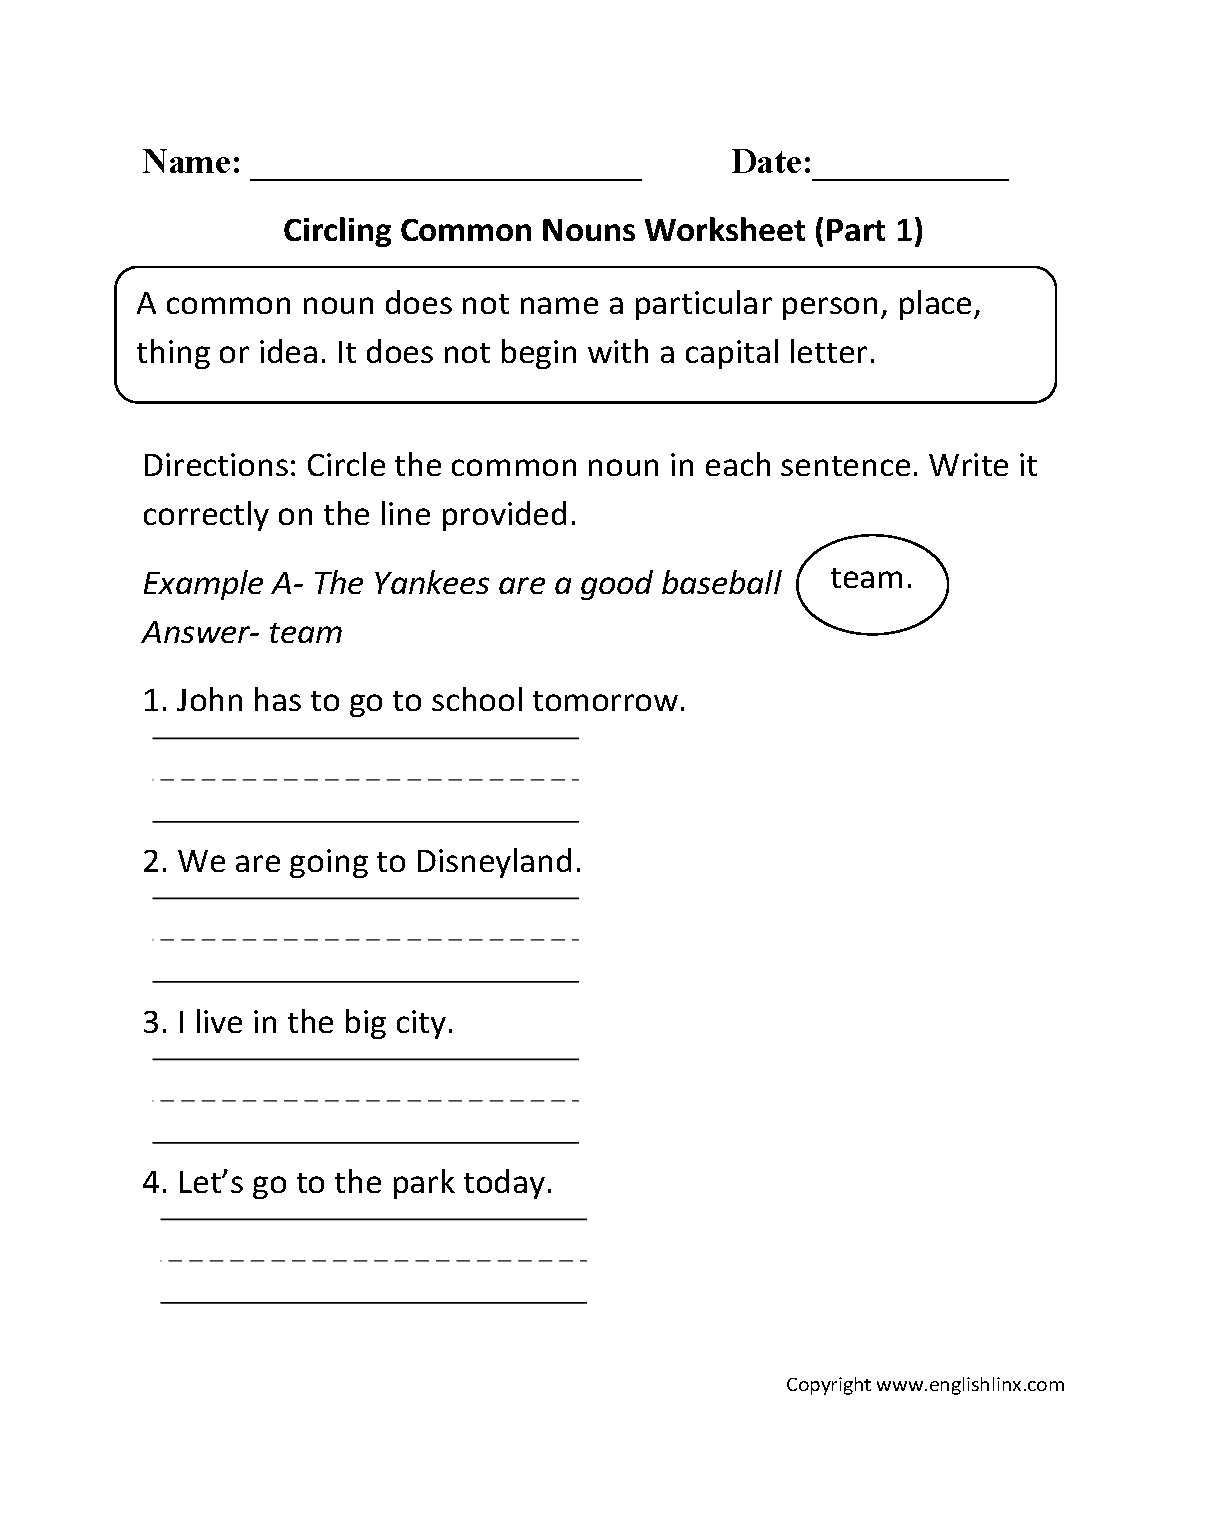 Circling mon Nouns Worksheet Part 1 Worksheets